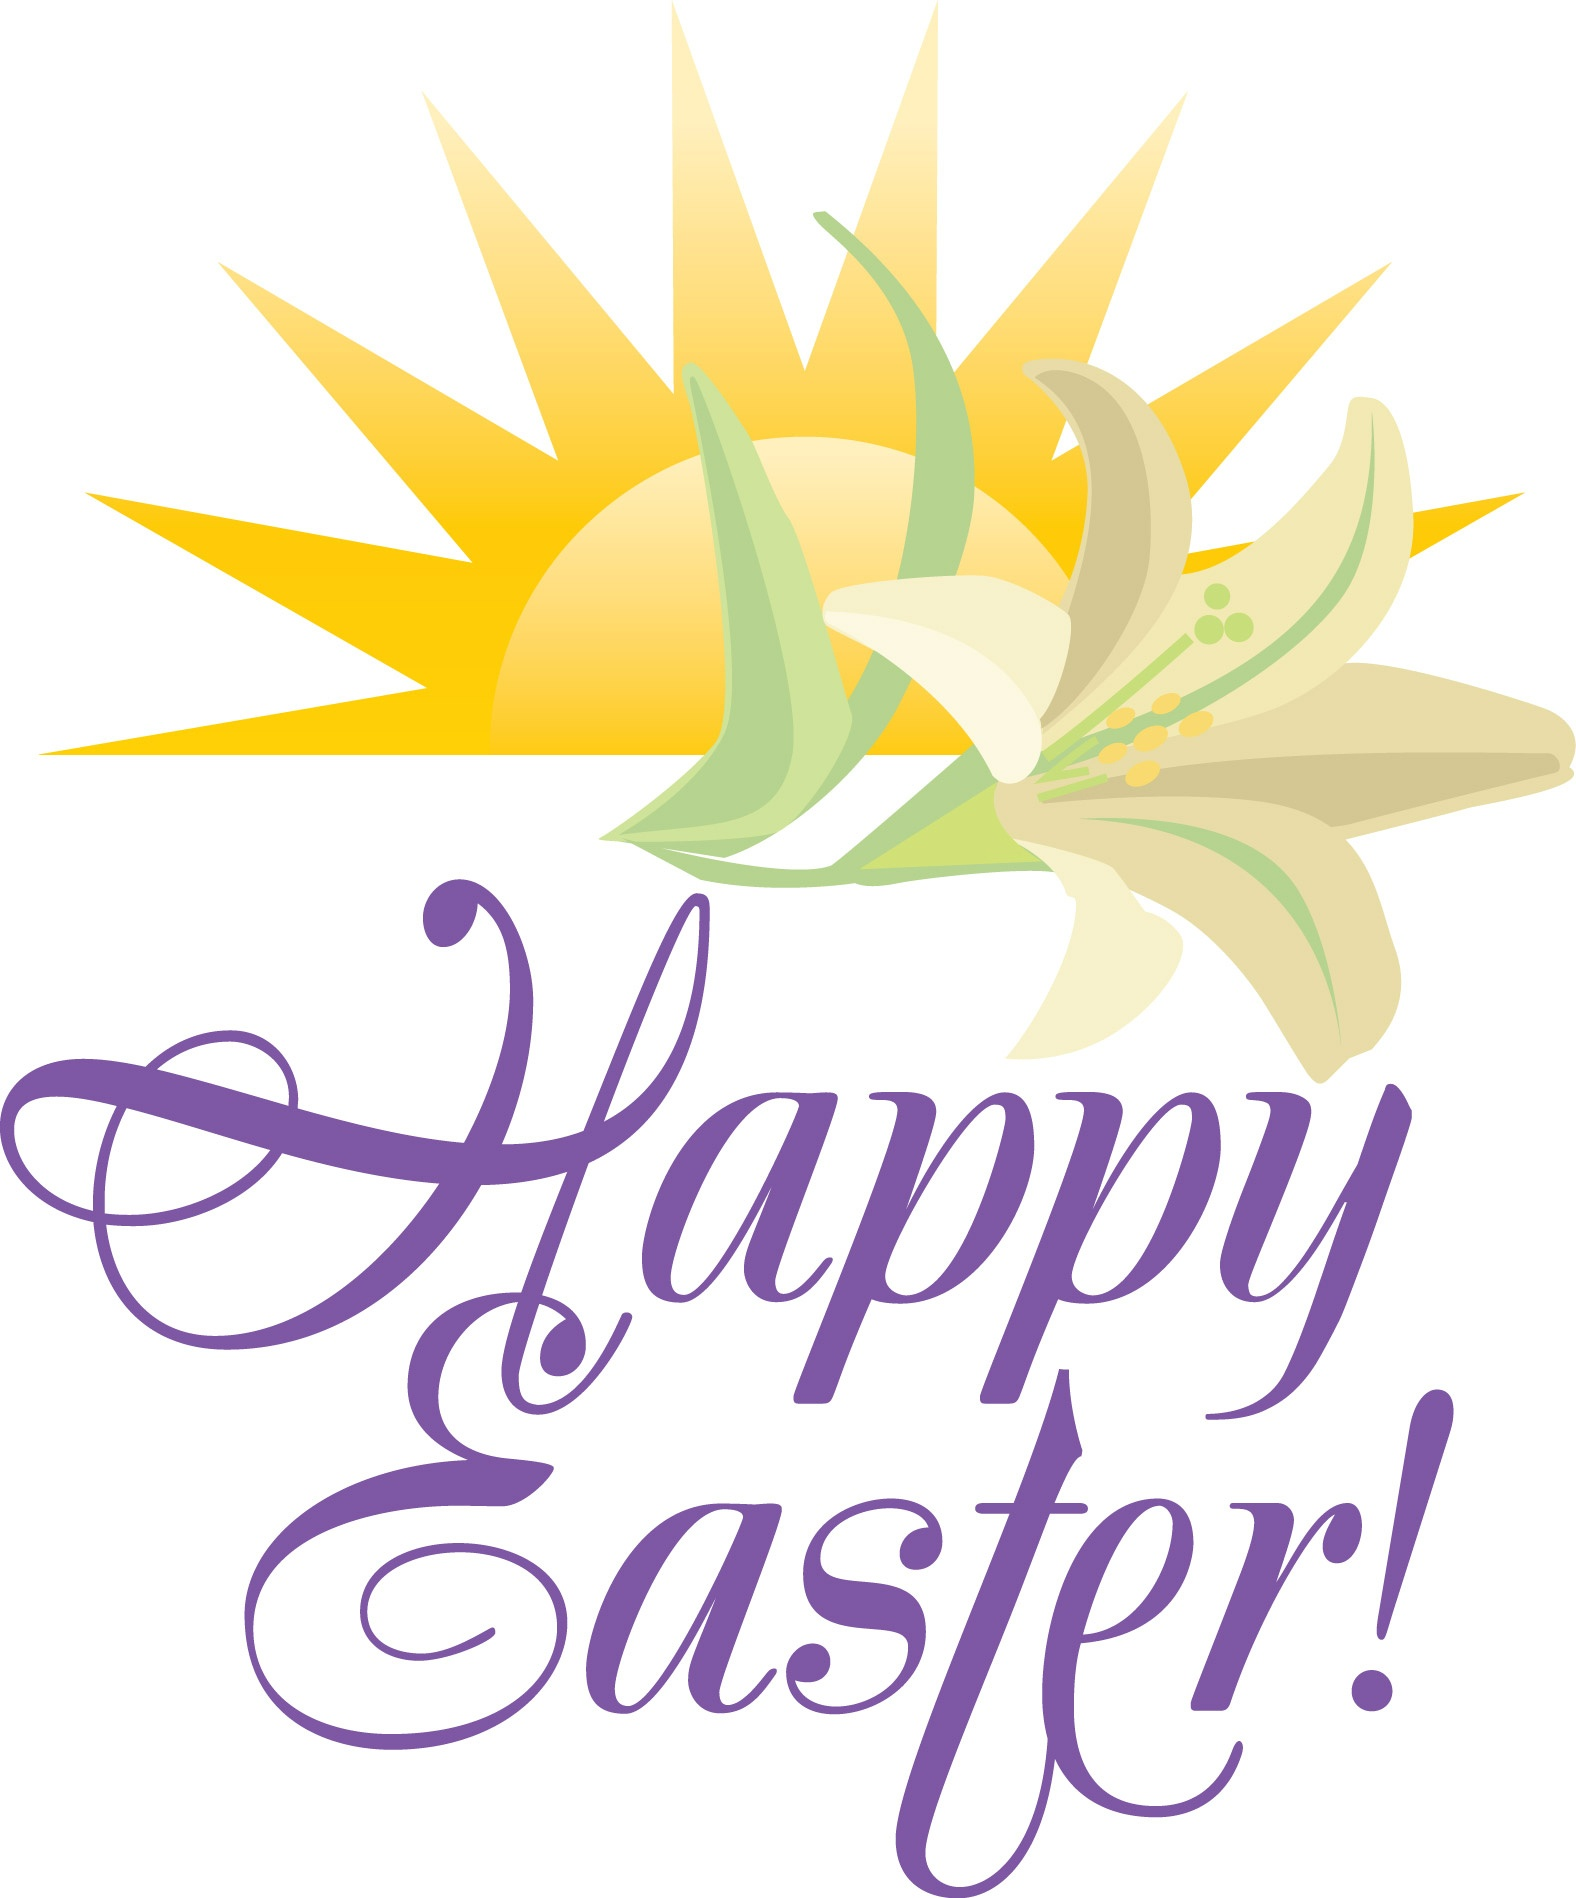 Free Easter Sunday Images, Download Free Clip Art, Free Clip Art On - Free Printable Easter Sermons